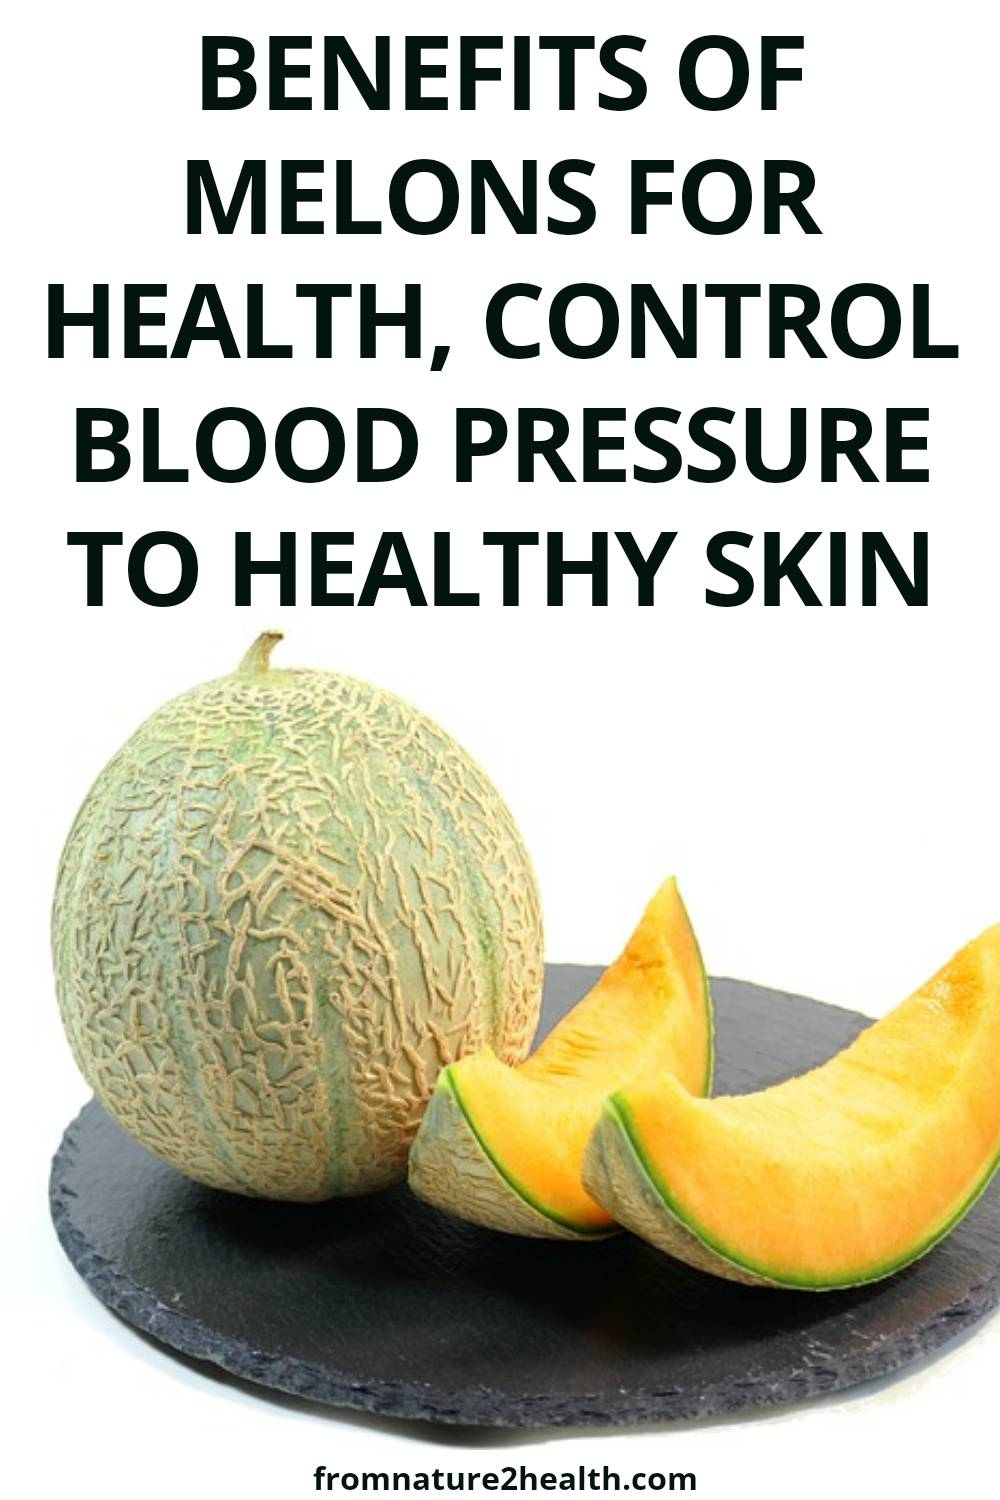 Benefits of Melons for Health, Control Blood Pressure to Healthy Skin